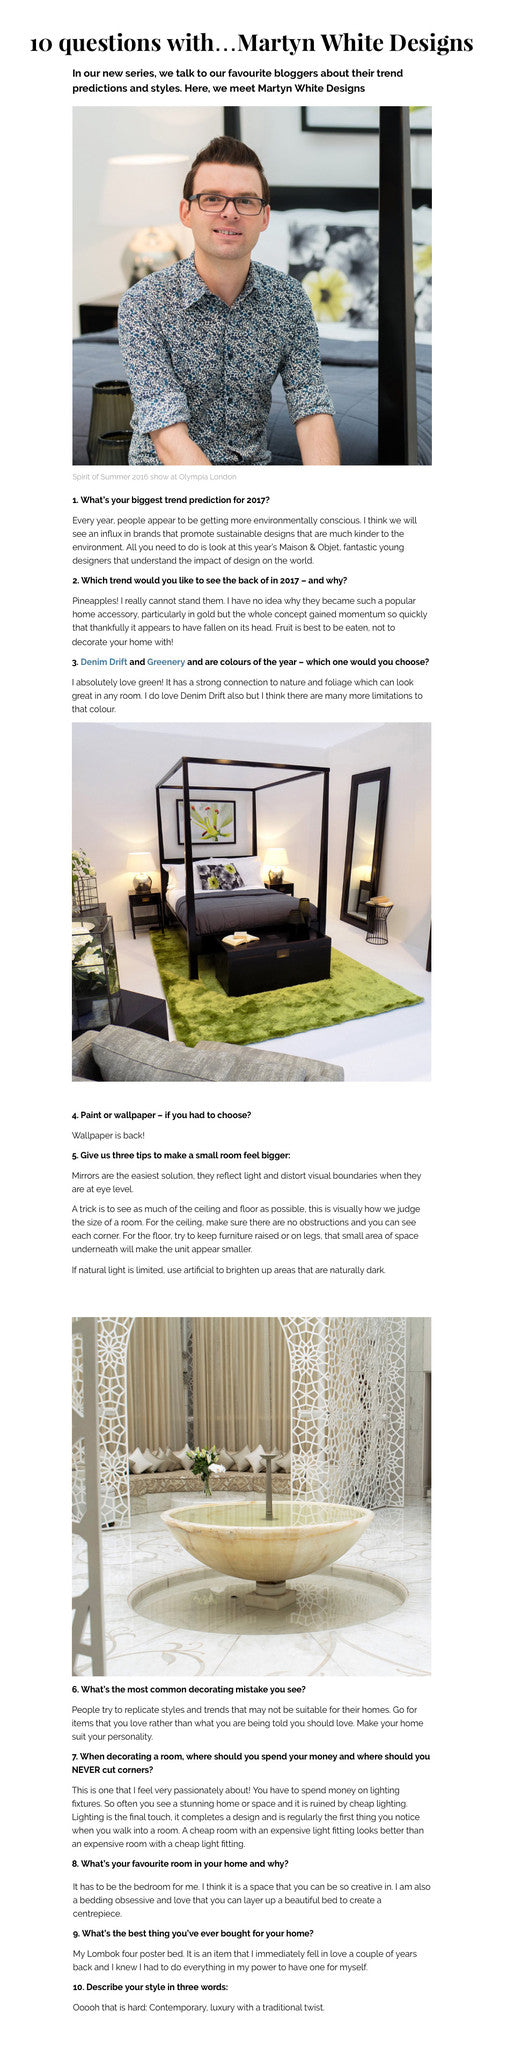 Ideal Home interview with Martyn White Designs